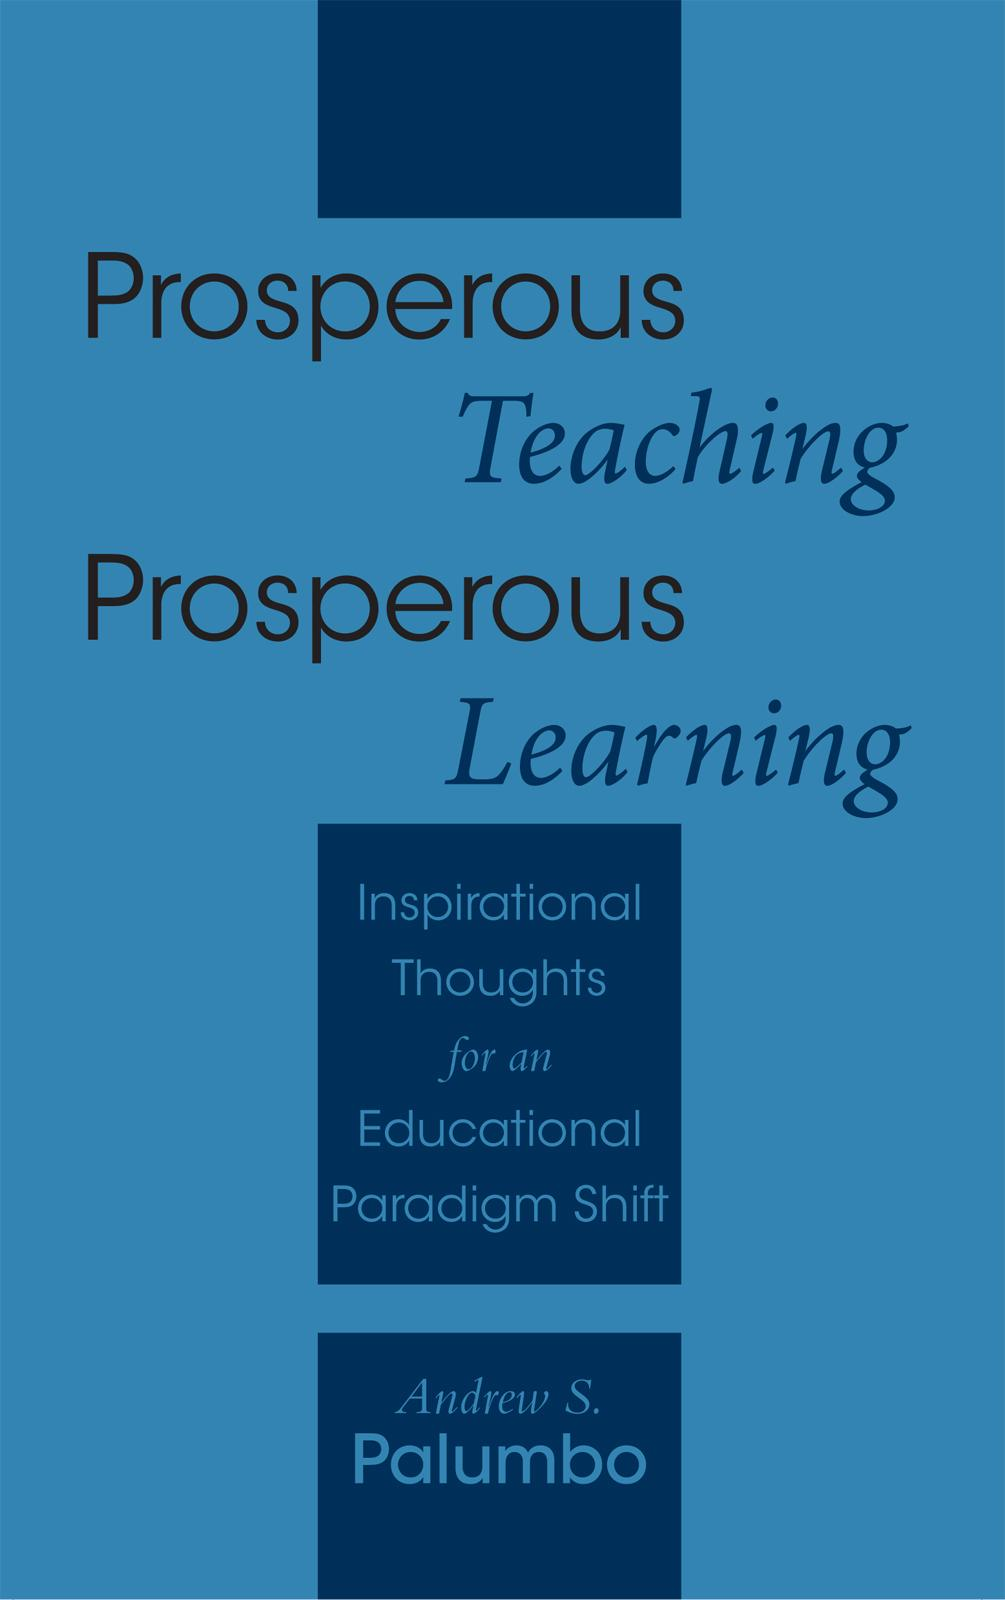 Prosperous Teaching Prosperous Learning: Inspirational Thoughts for an Educational Paradigm Shift EB9781452535012